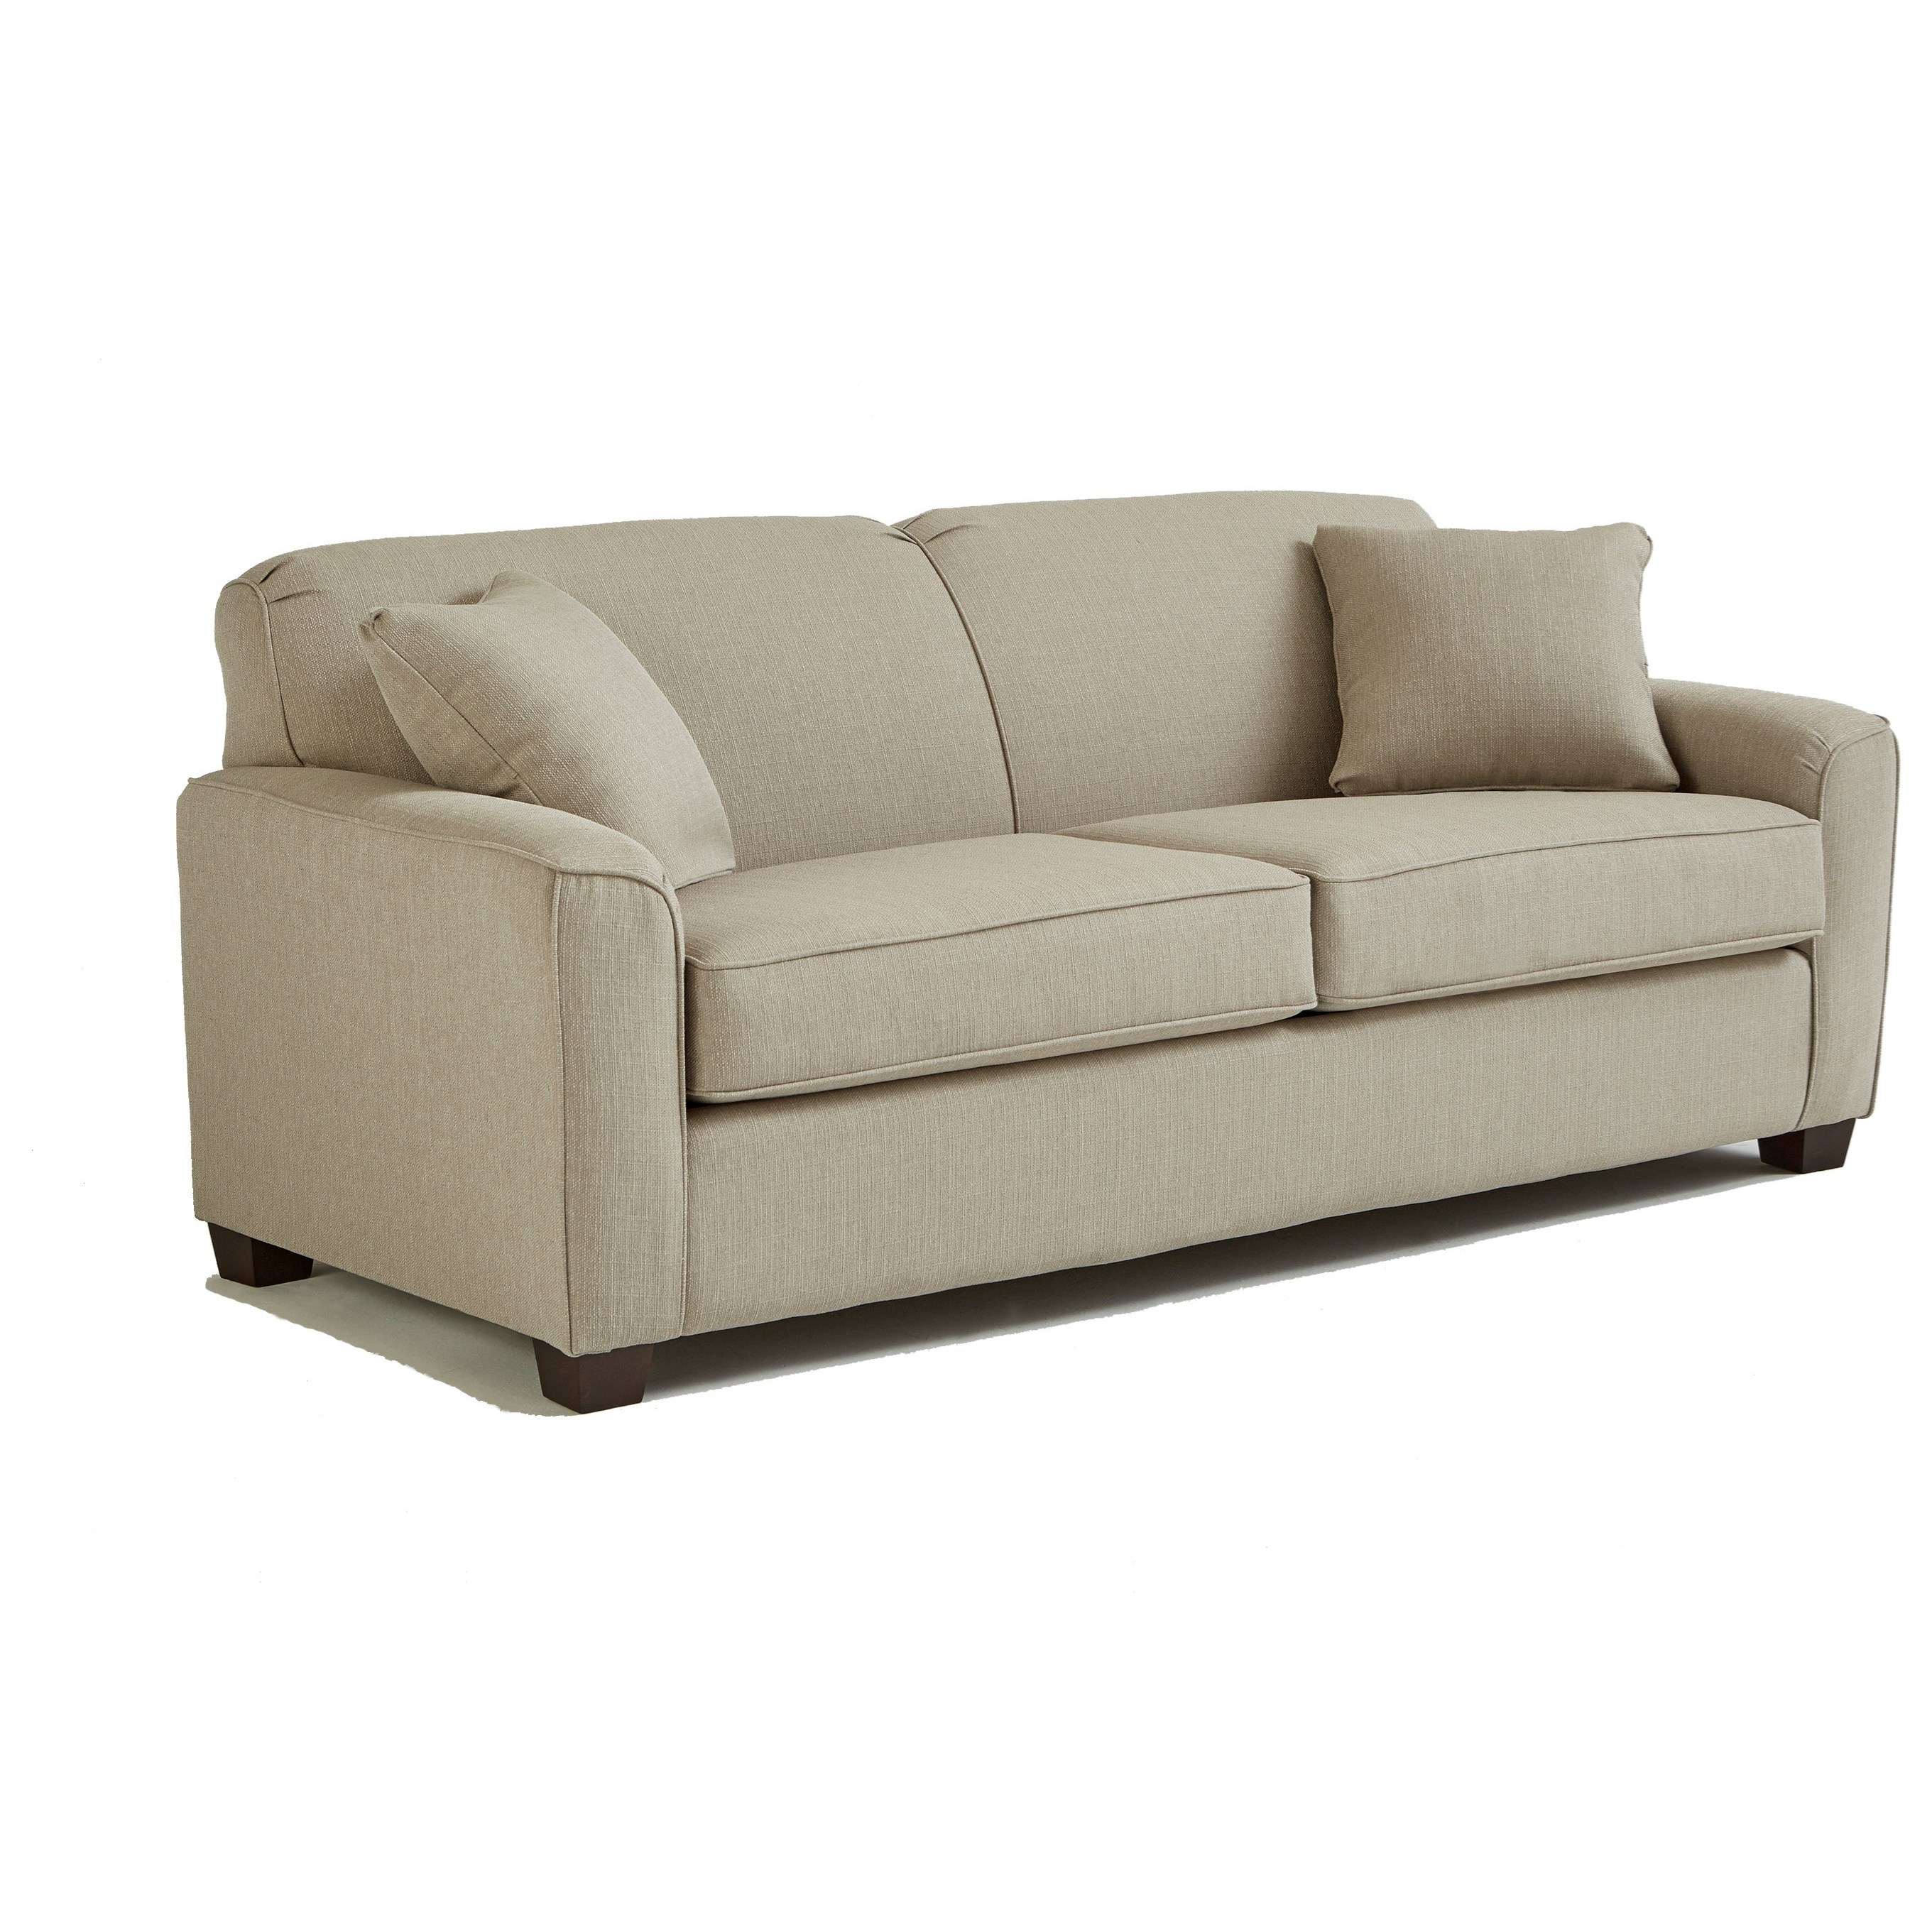 Best Home Furnishings Dinah Contemporary Queen Sofa Sleeper With Air Dream Mattress Olinde 39 S